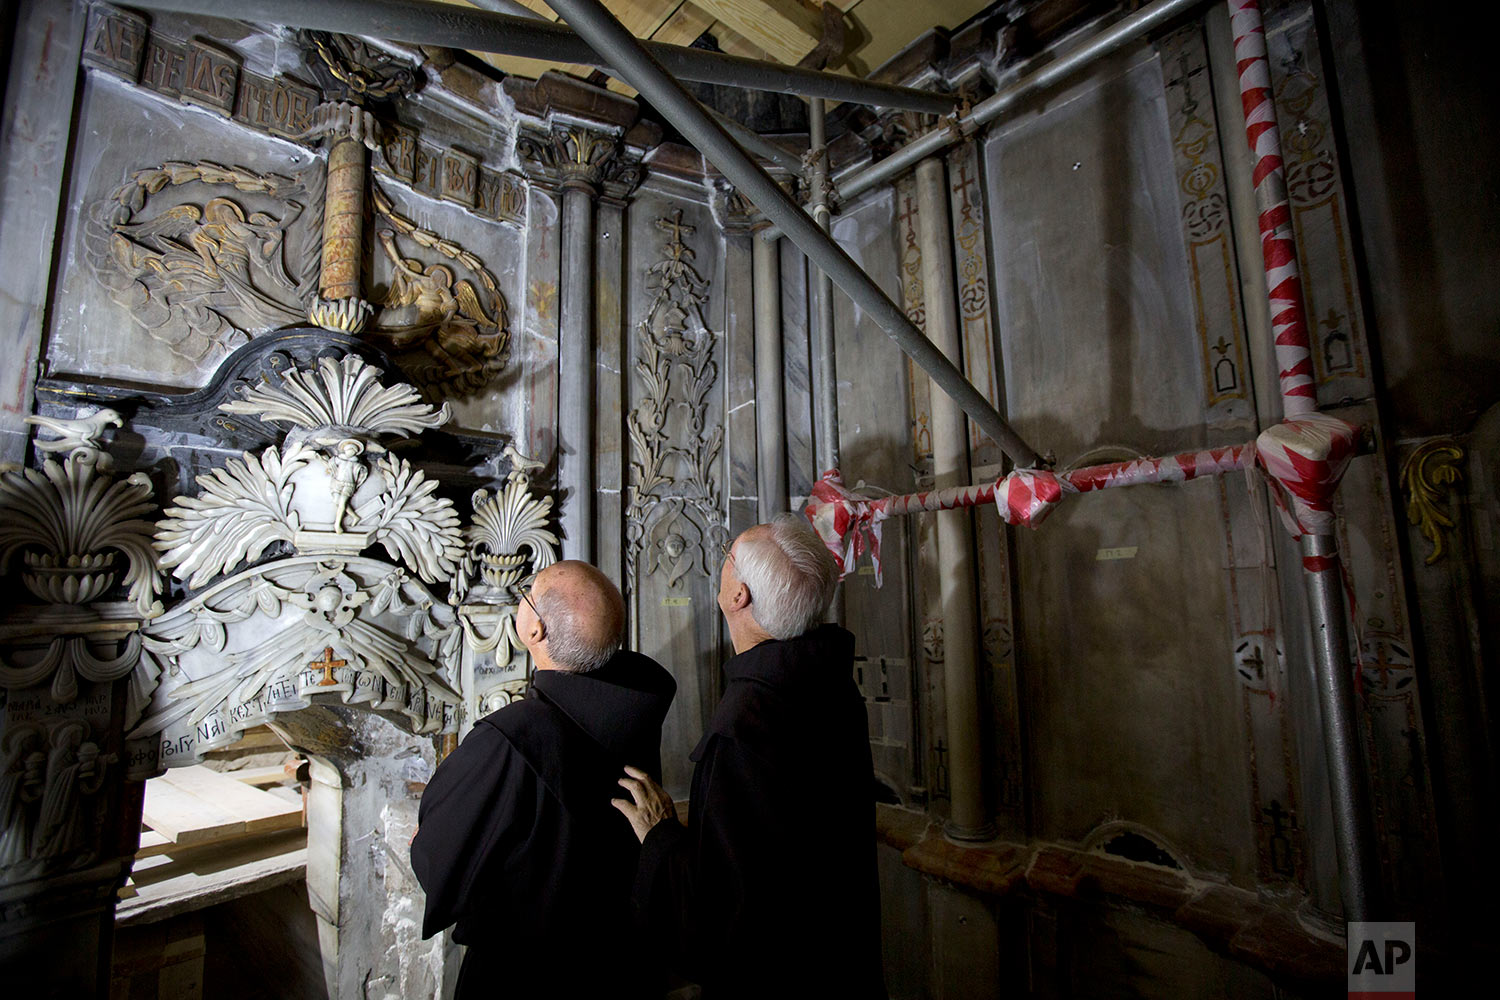 In this Friday, Oct. 28, 2016 photo, Franciscan priests visit the Tomb of Jesus during its renovation in the Church of the Holy Sepulchre in Jerusalem's Old City.  (AP Photo/Oded Balilty)